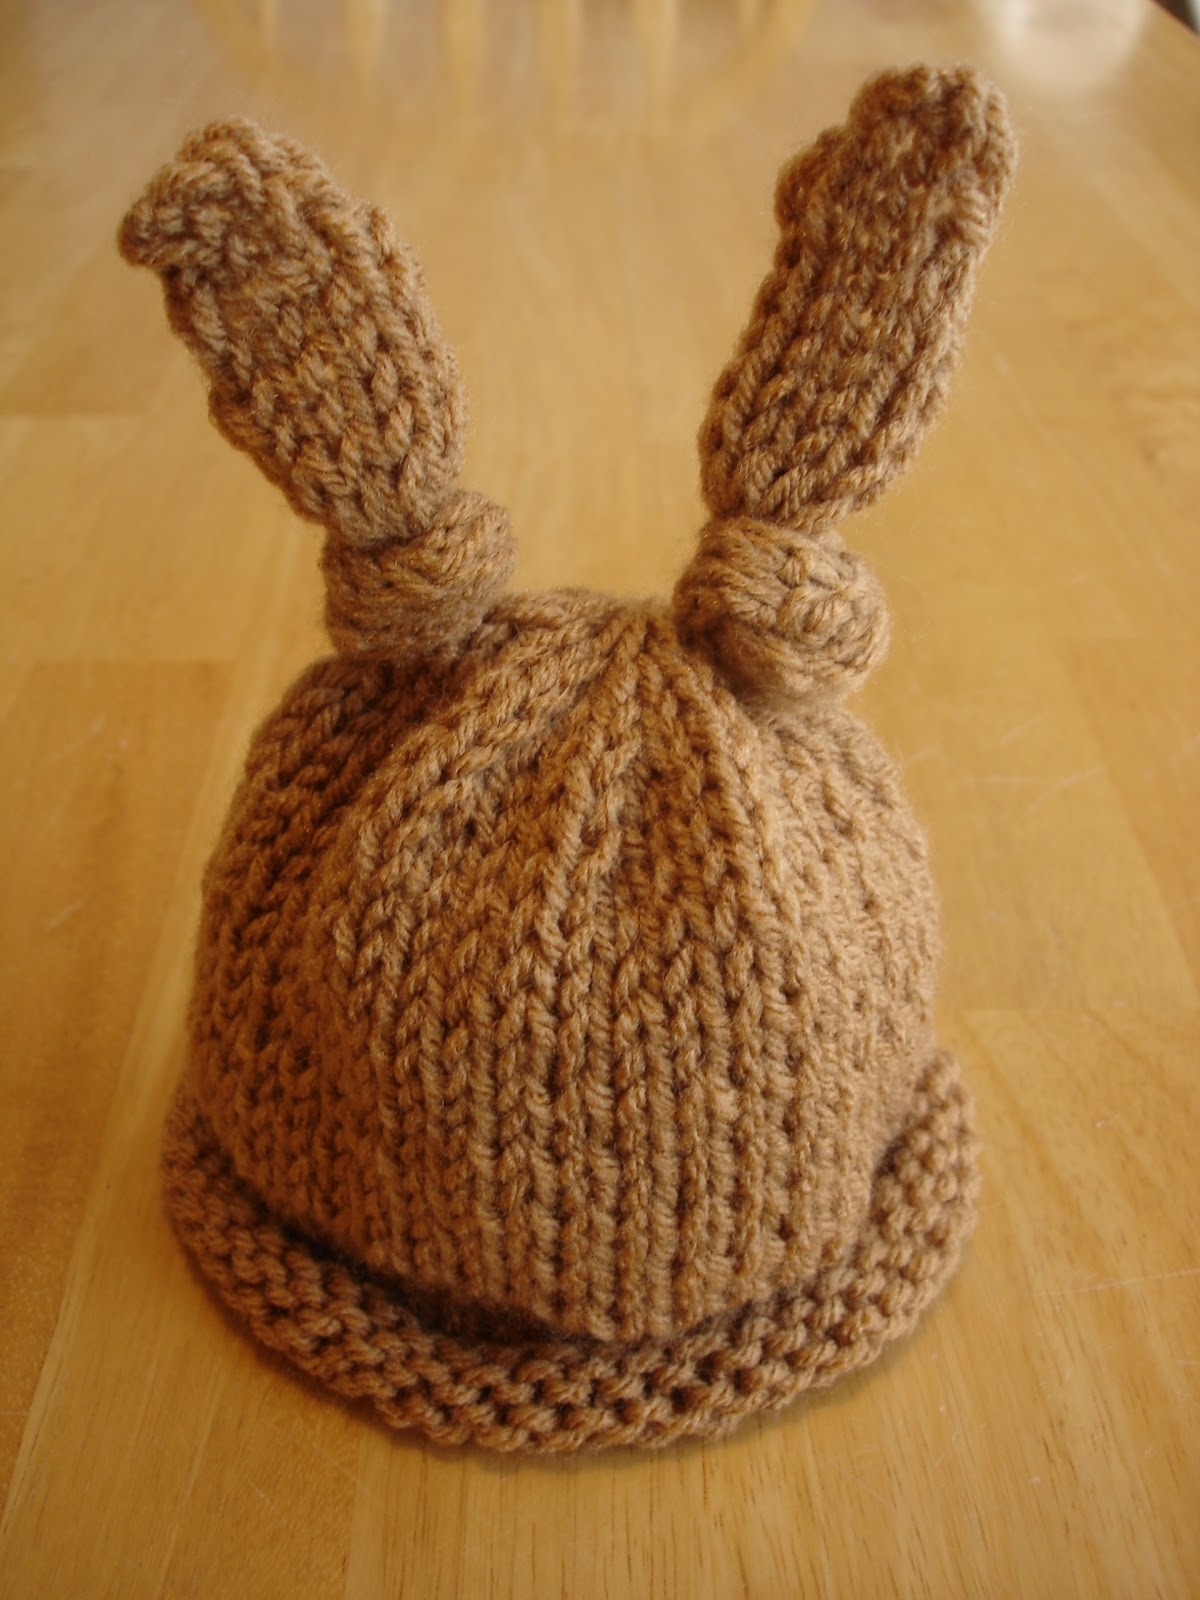 Free Baby Hat Knitting Patterns : Fiber Flux: Free Knitting Pattern...Baby Bunny Newborn or Preemie Hat!